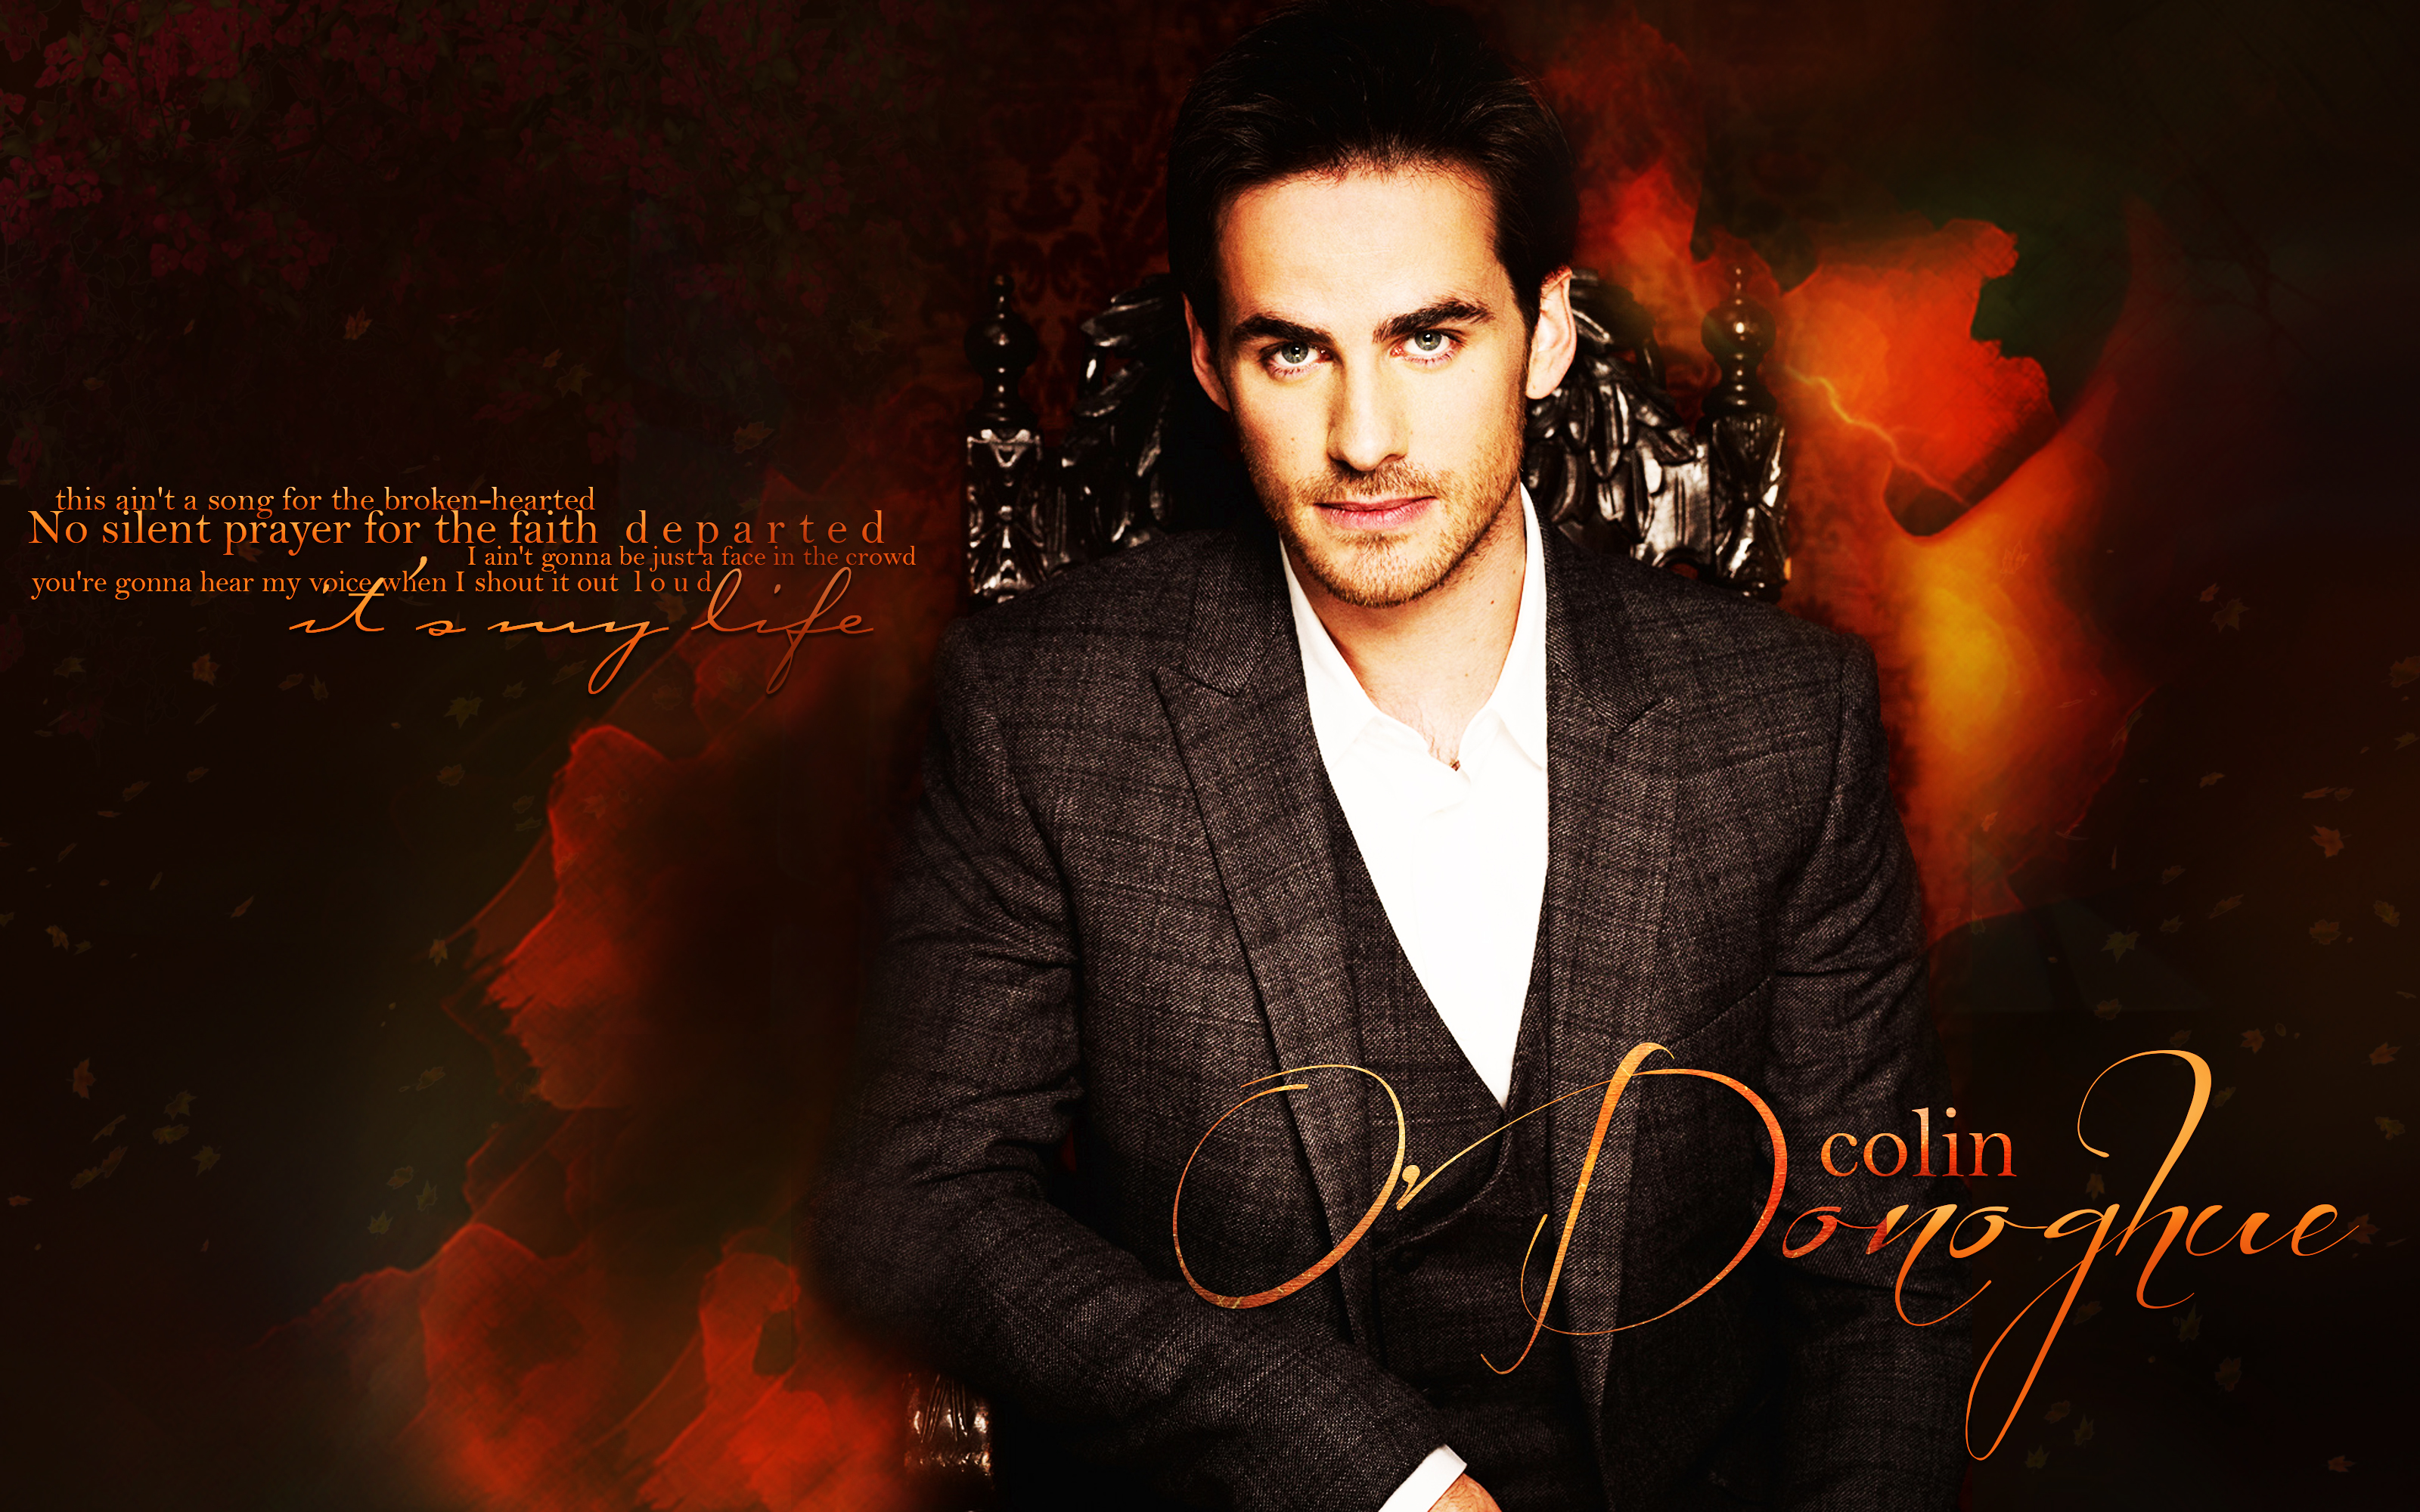 colin odonoghue images colin odonoghue hd wallpaper and